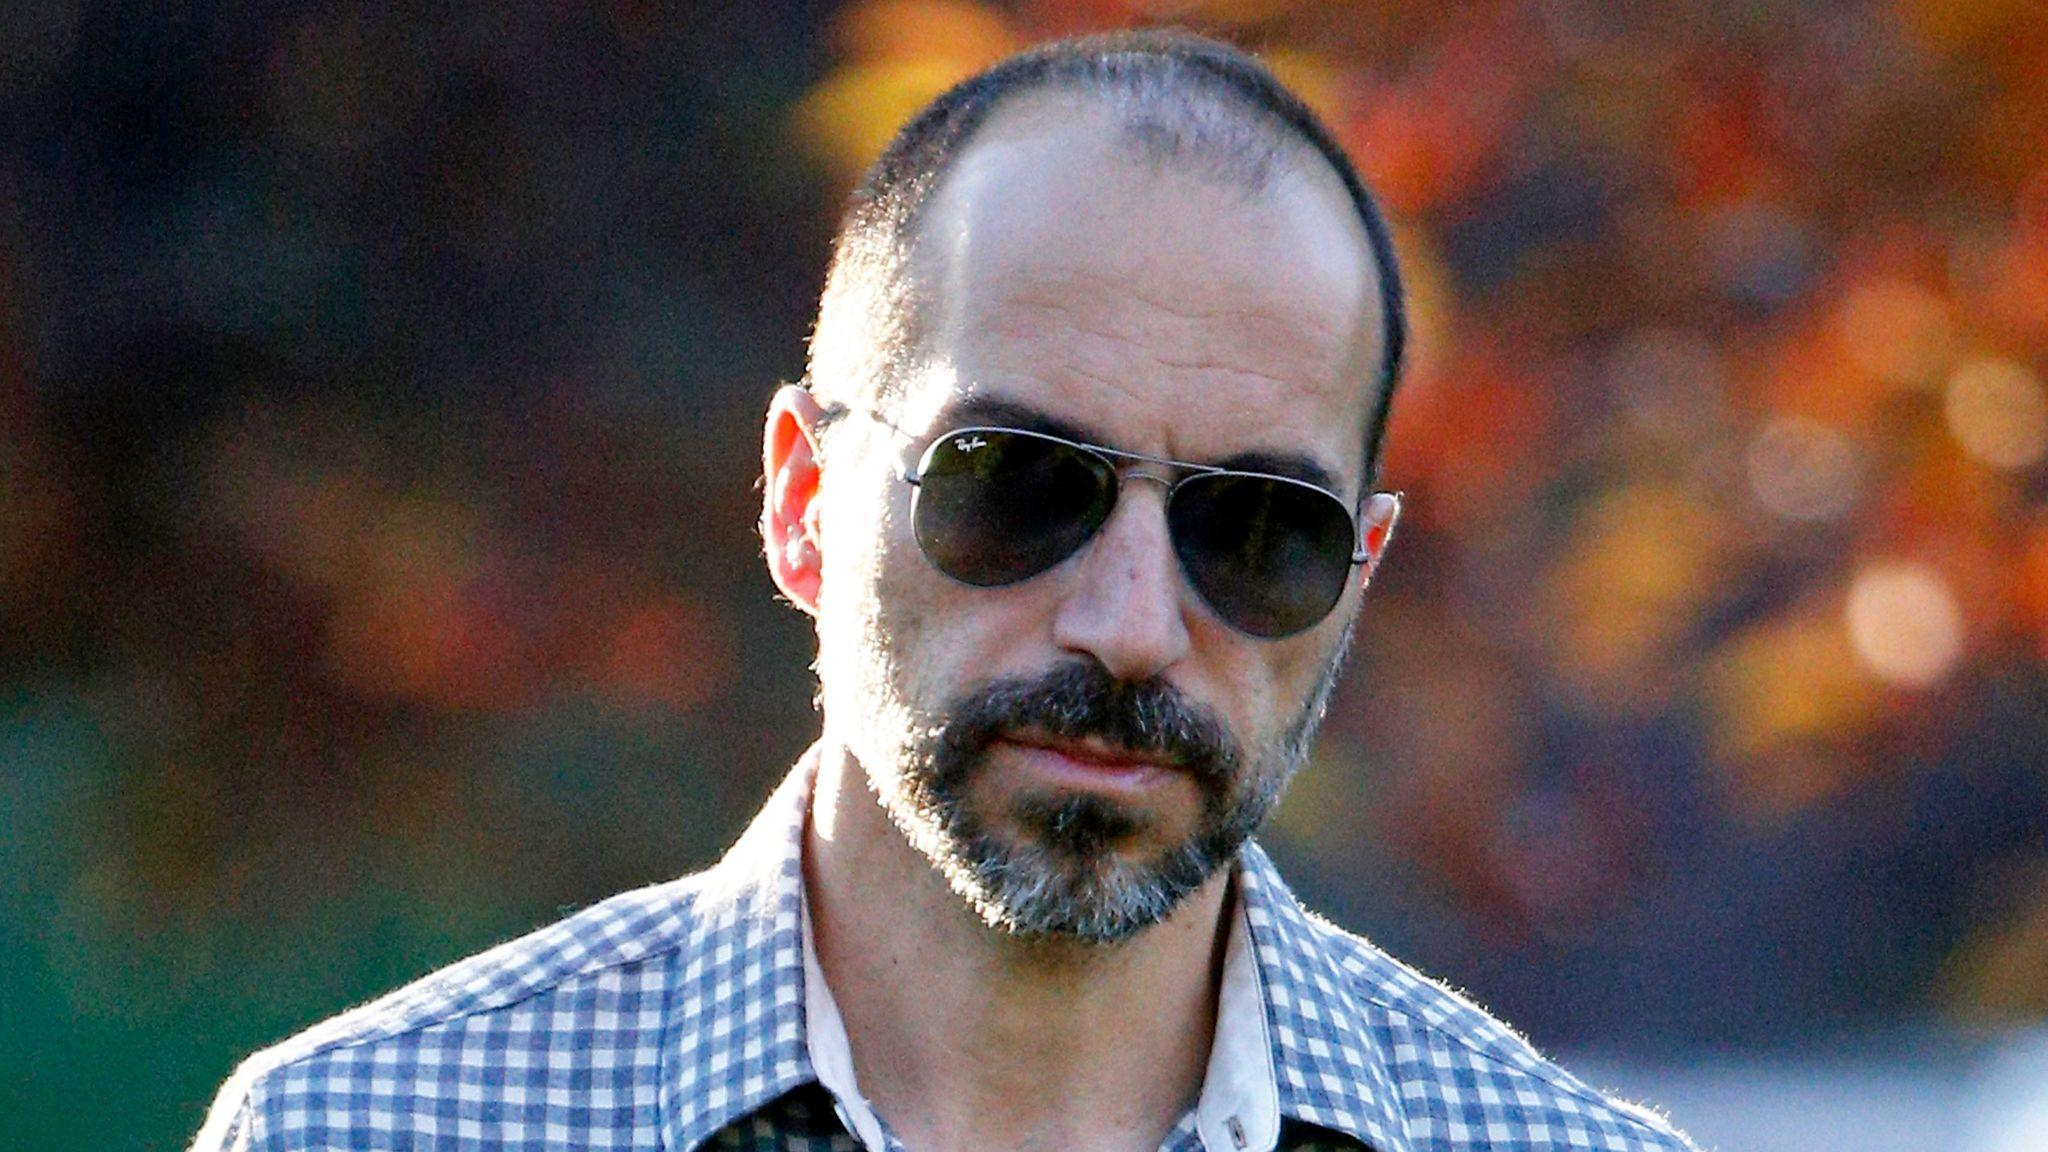 Dara Khosrowshahi, president and chief executive officer of Expedia, shown in 2014, has been chose to lead Uber.